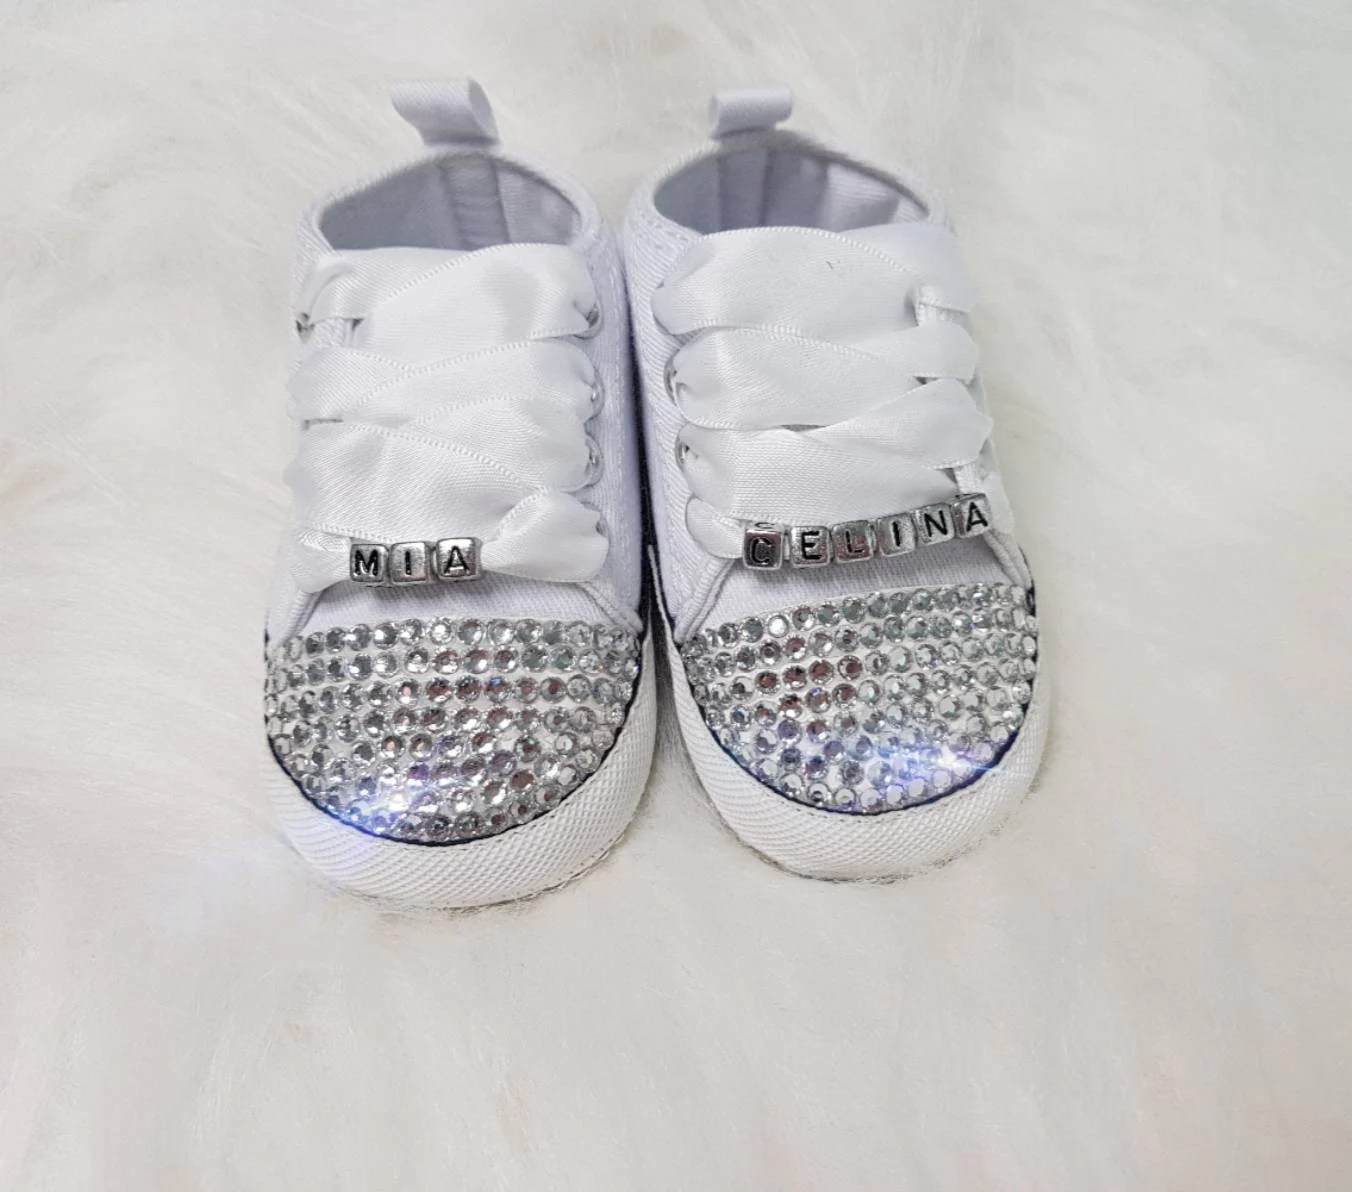 Baby White Converse Pram Shoes Personalised Unisex Crib Baby Pram Crib Converse Custom Shoes Personalised